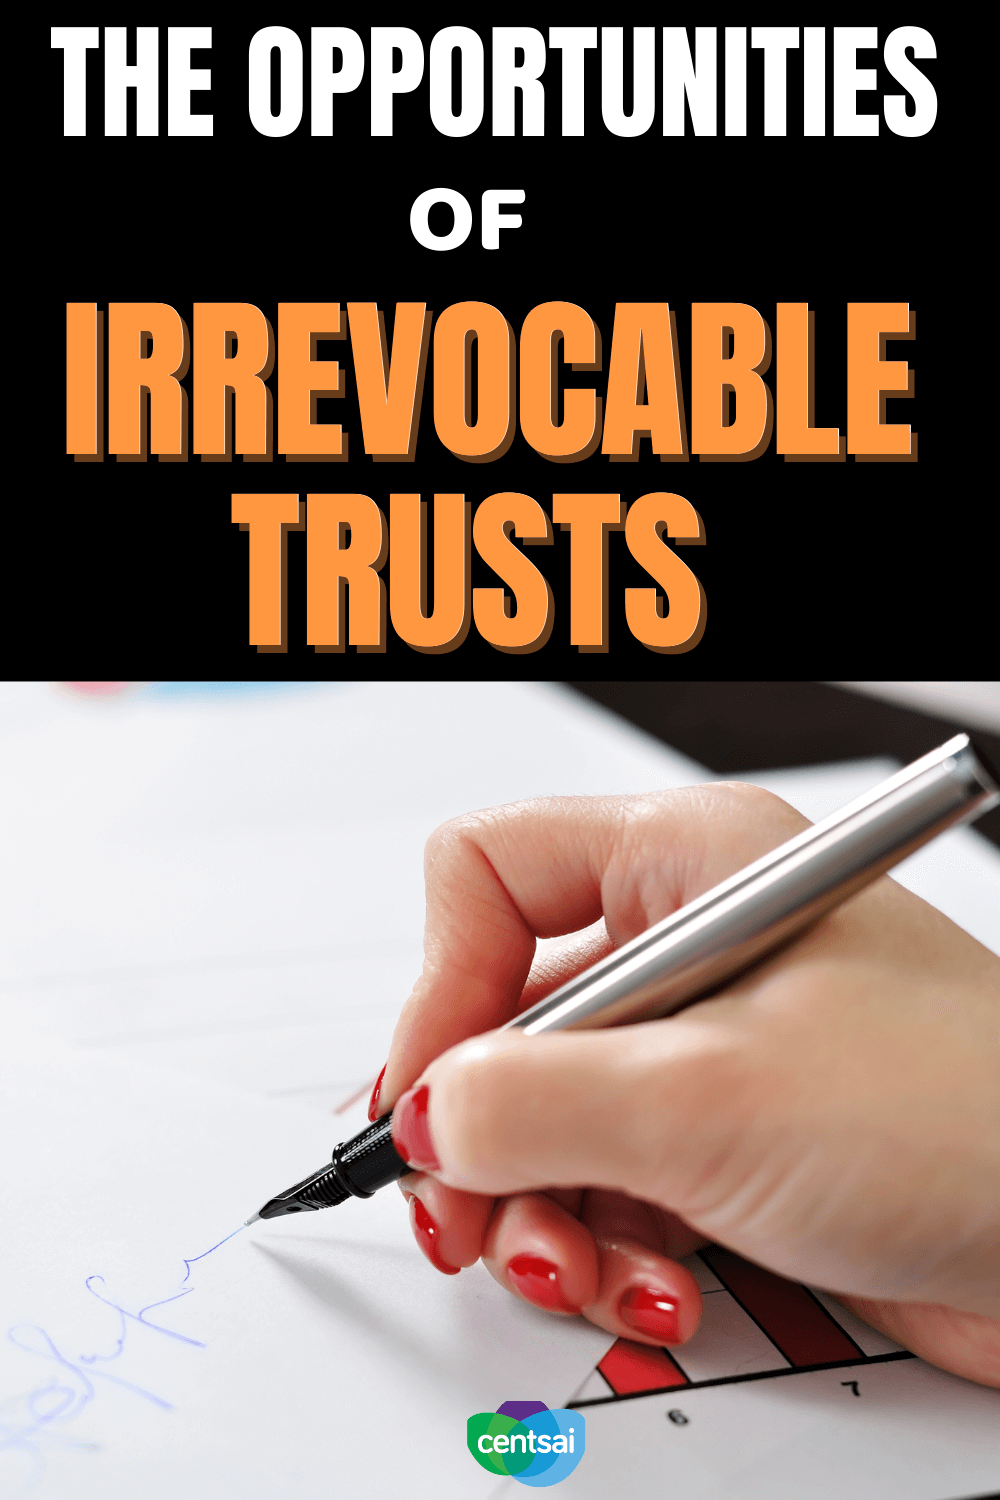 The Opportunities of Irrevocable Trusts. Irrevocable trusts ensure tax benefits to the guarantor, but they come with restrictions. Read up on what you should know beforehand. Check out CentSai to learn more about financial planning tips. #CentSai #Irrevocabletrusts #financialplanning #moneymanagement